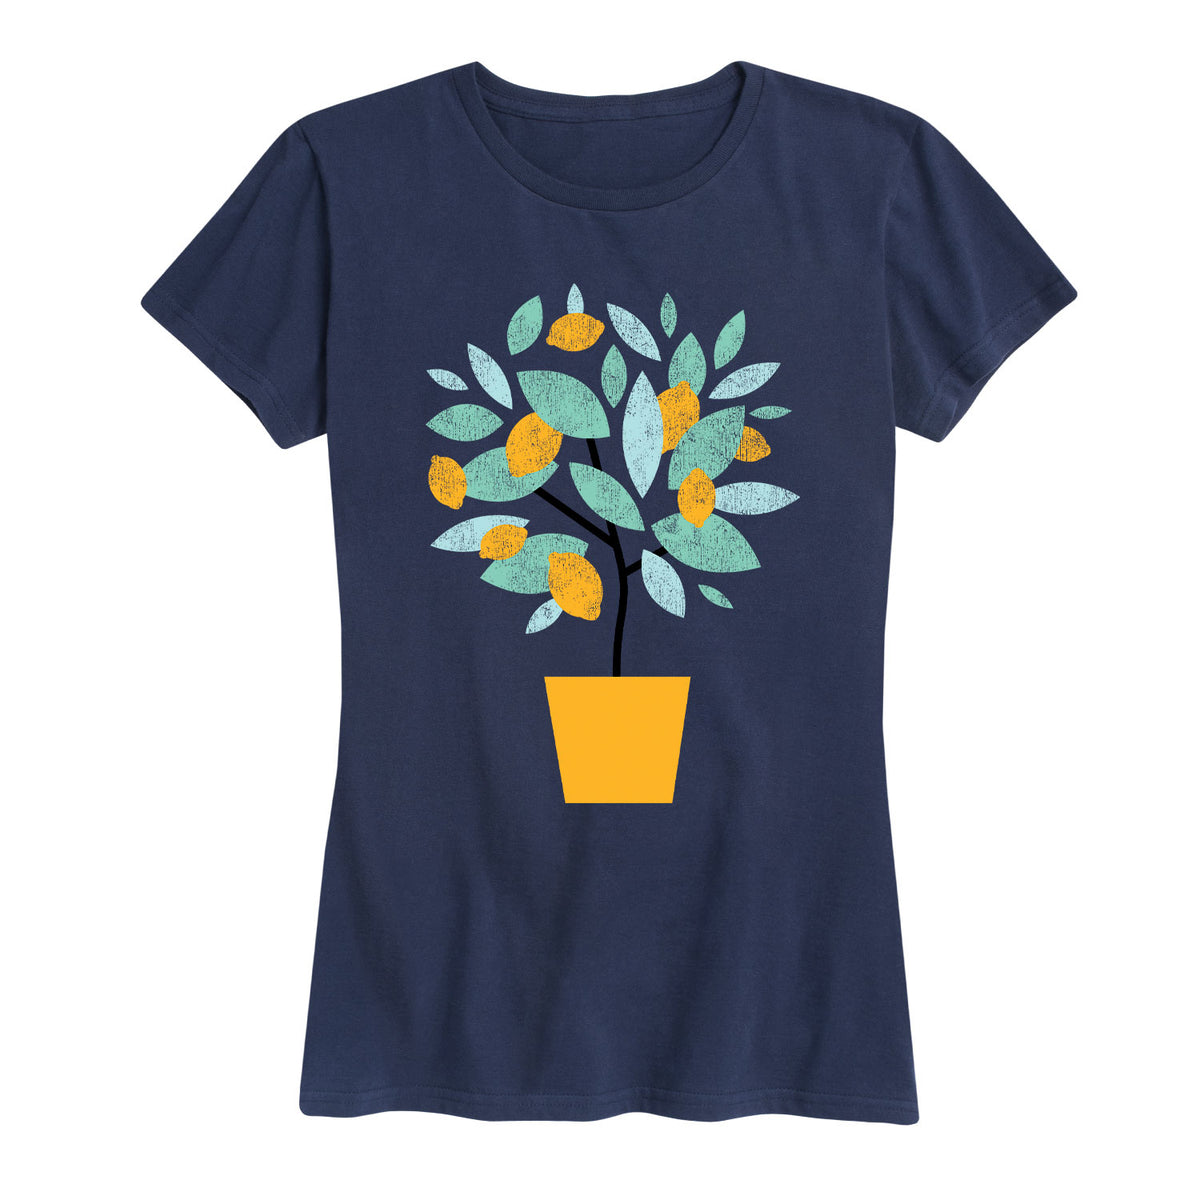 Lemon Tree - Women's Short Sleeve T-Shirt